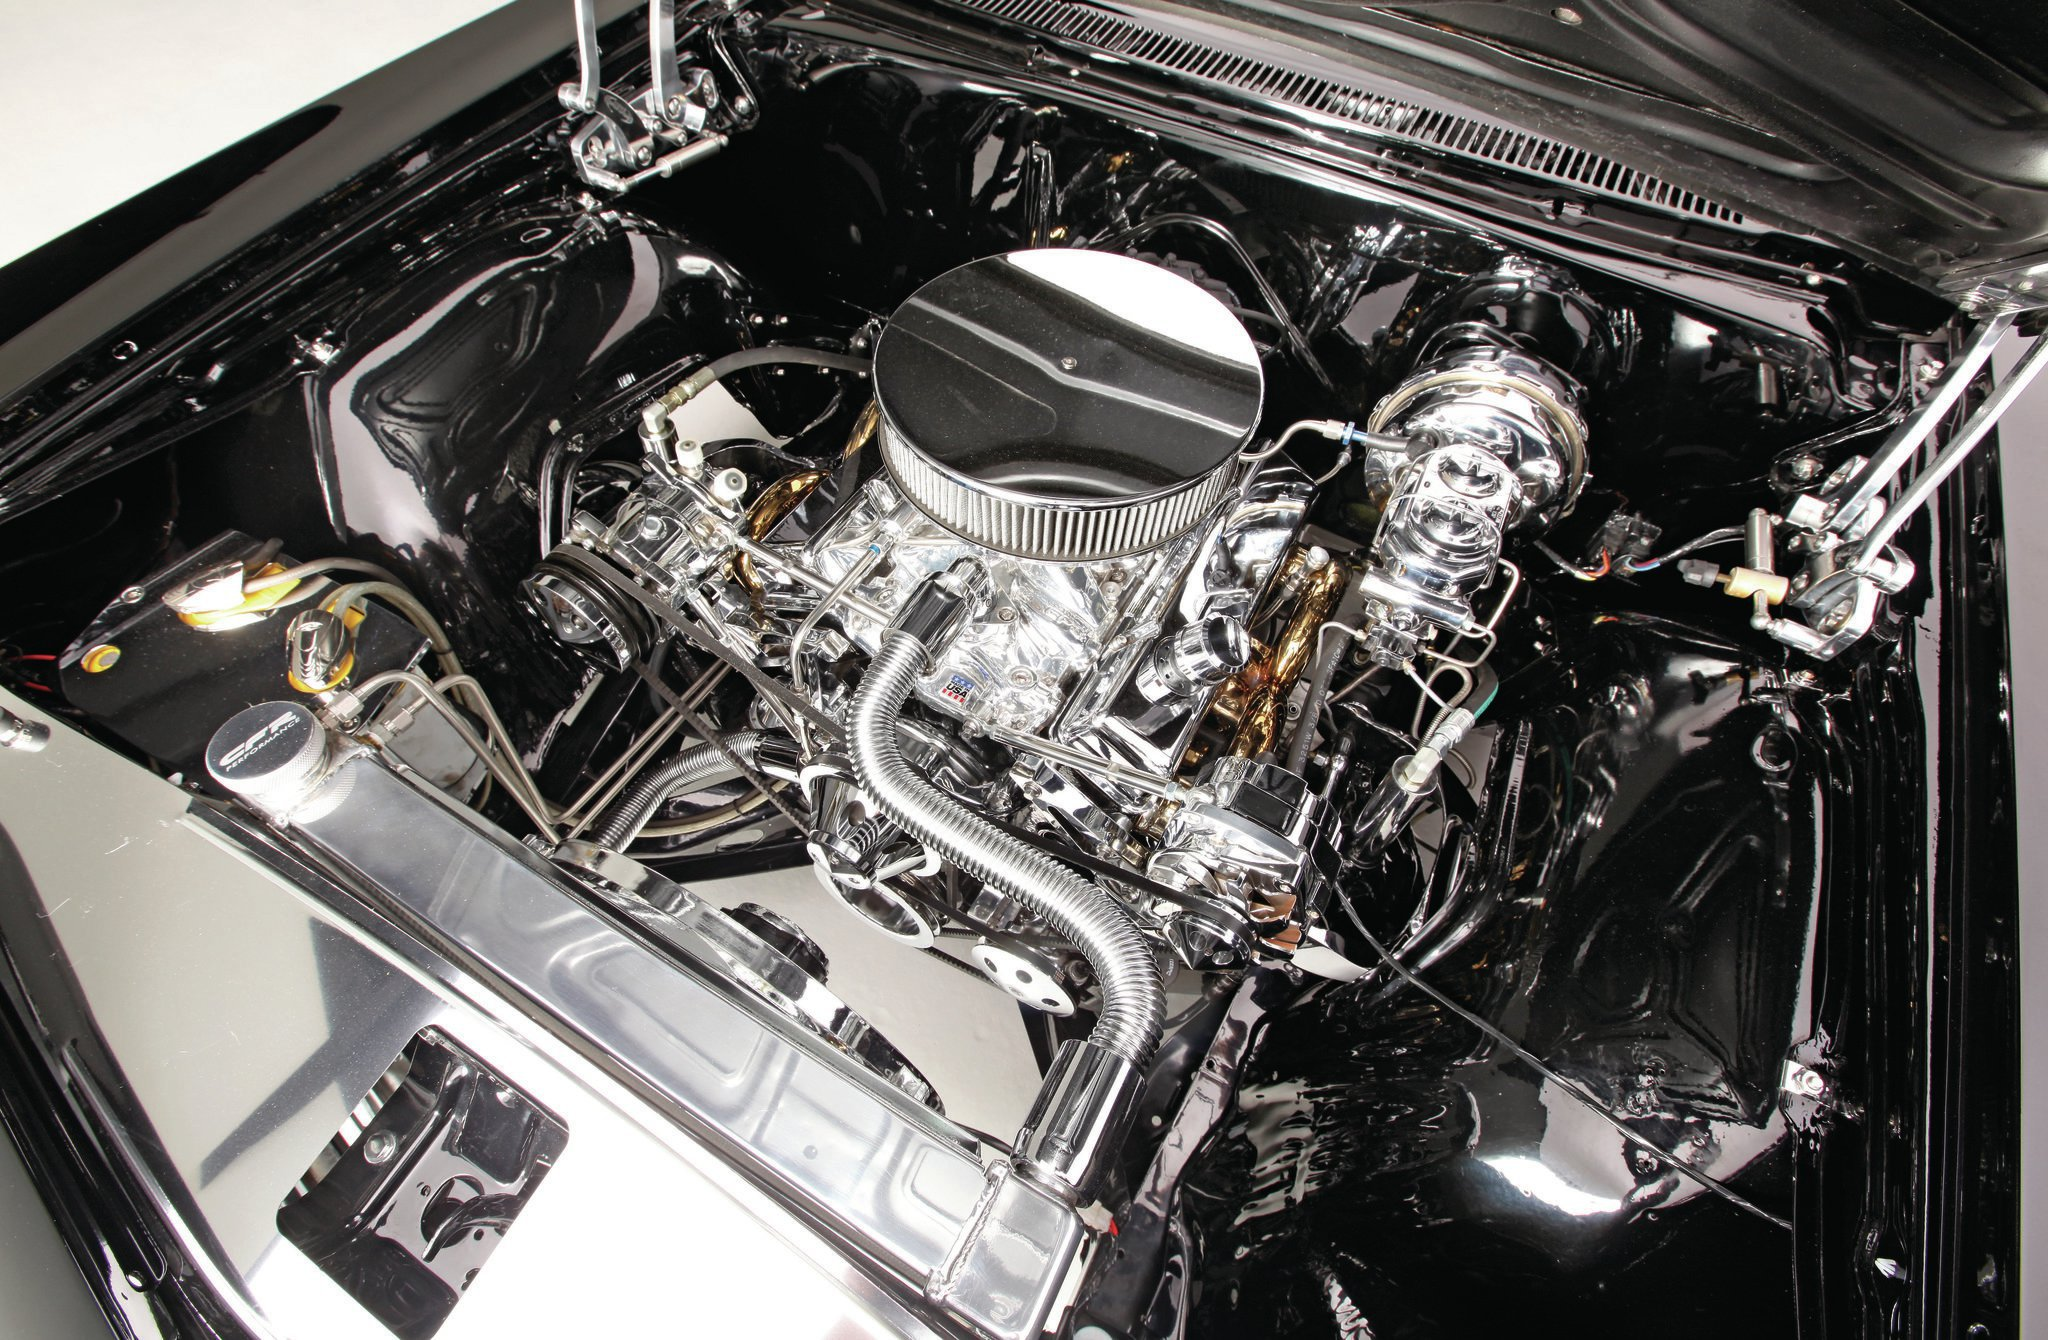 1966-chevrolet-impala-chevy-performance-350-crate-engine-04